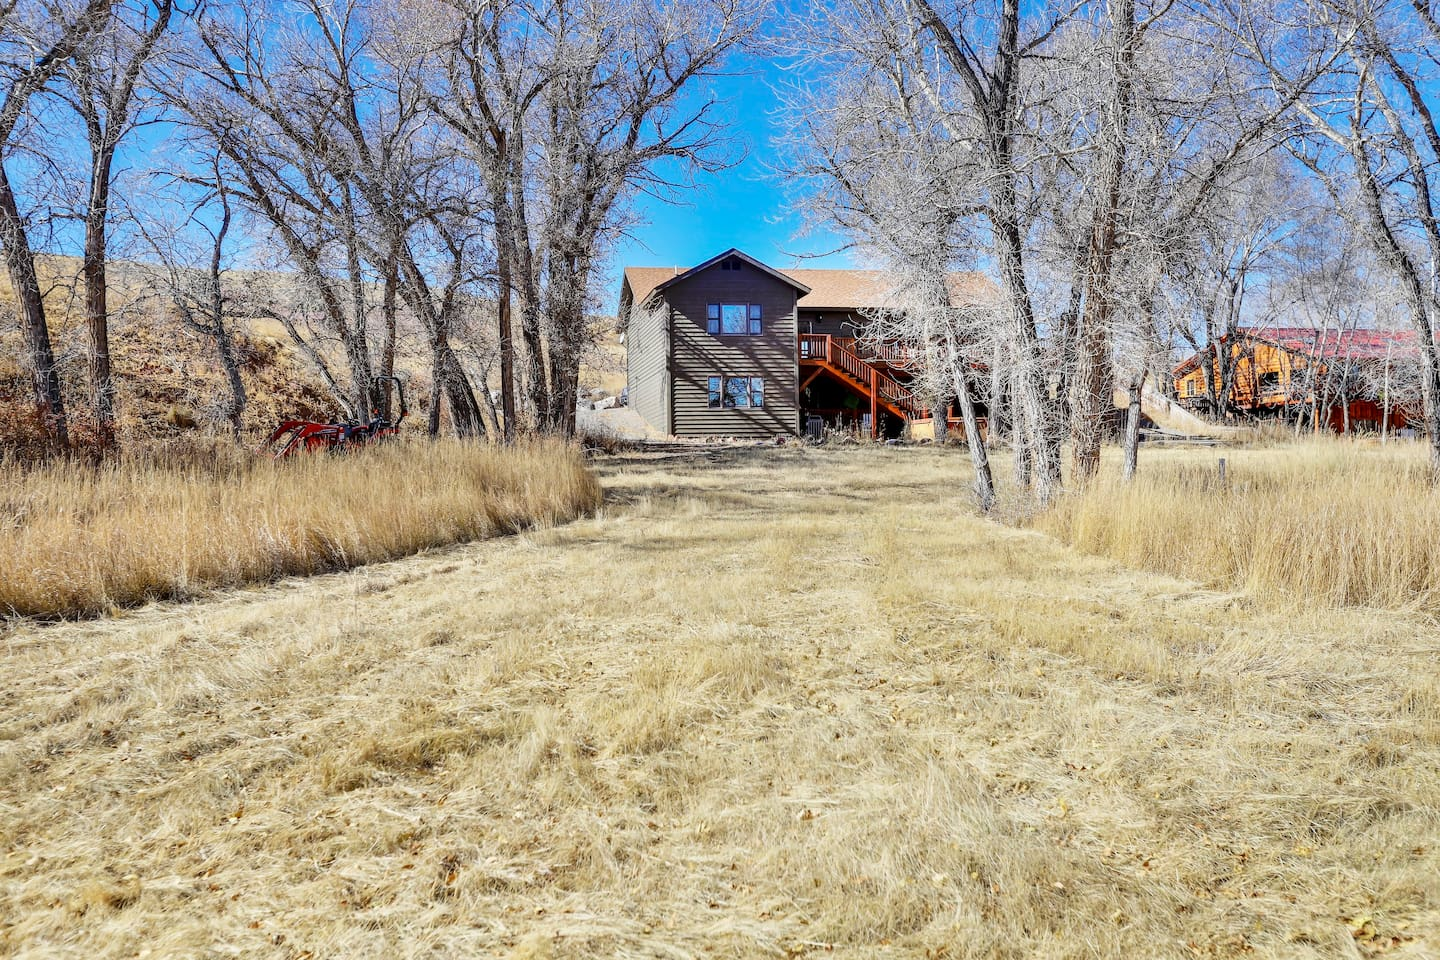 View of the back side of the home from the Wind River